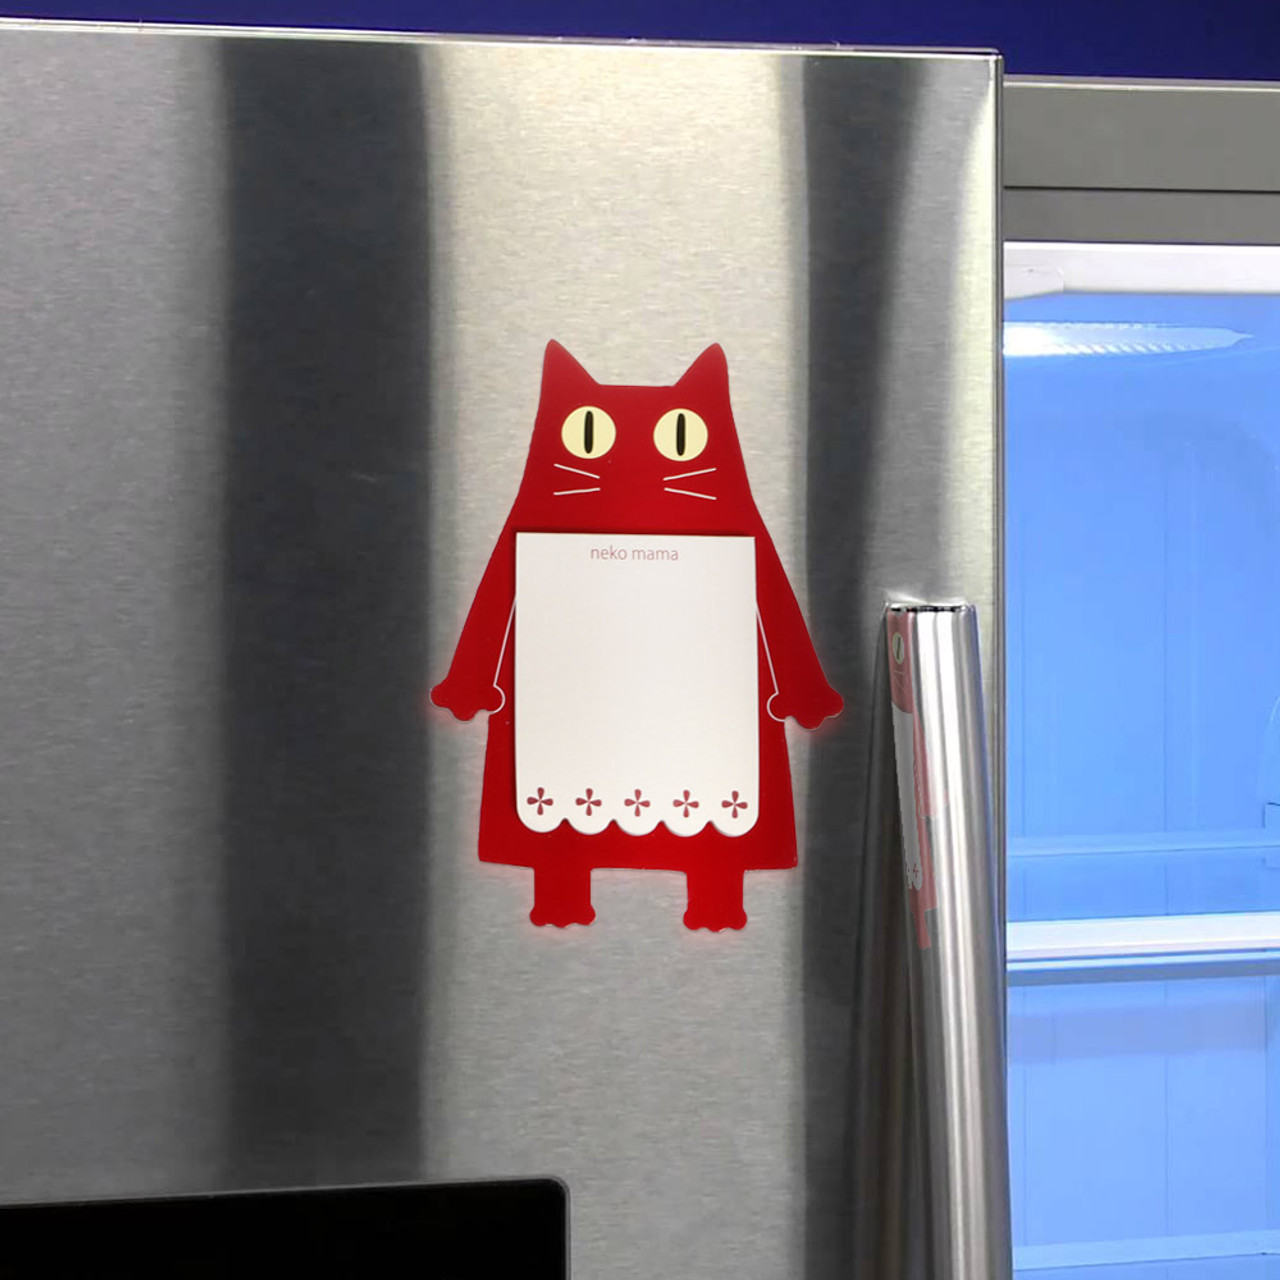 Noafamily Nekomama Red Cat Magnet Memo Pad 48 sheets ( Feature 01 )